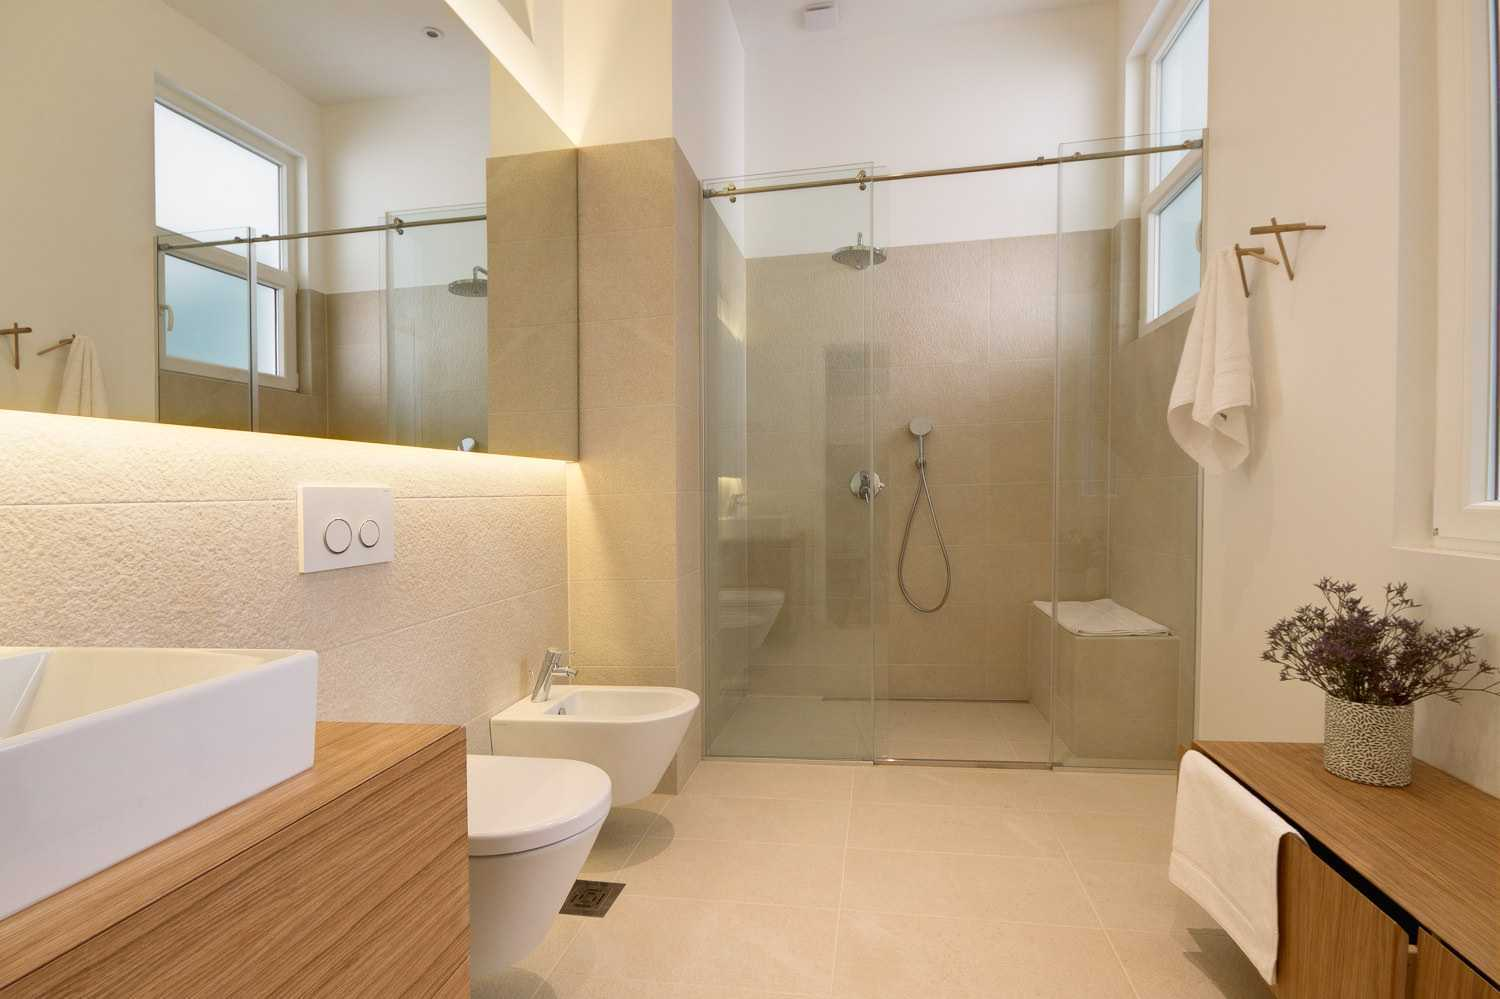 One of the bathrooms has a spacious walk-in shower.